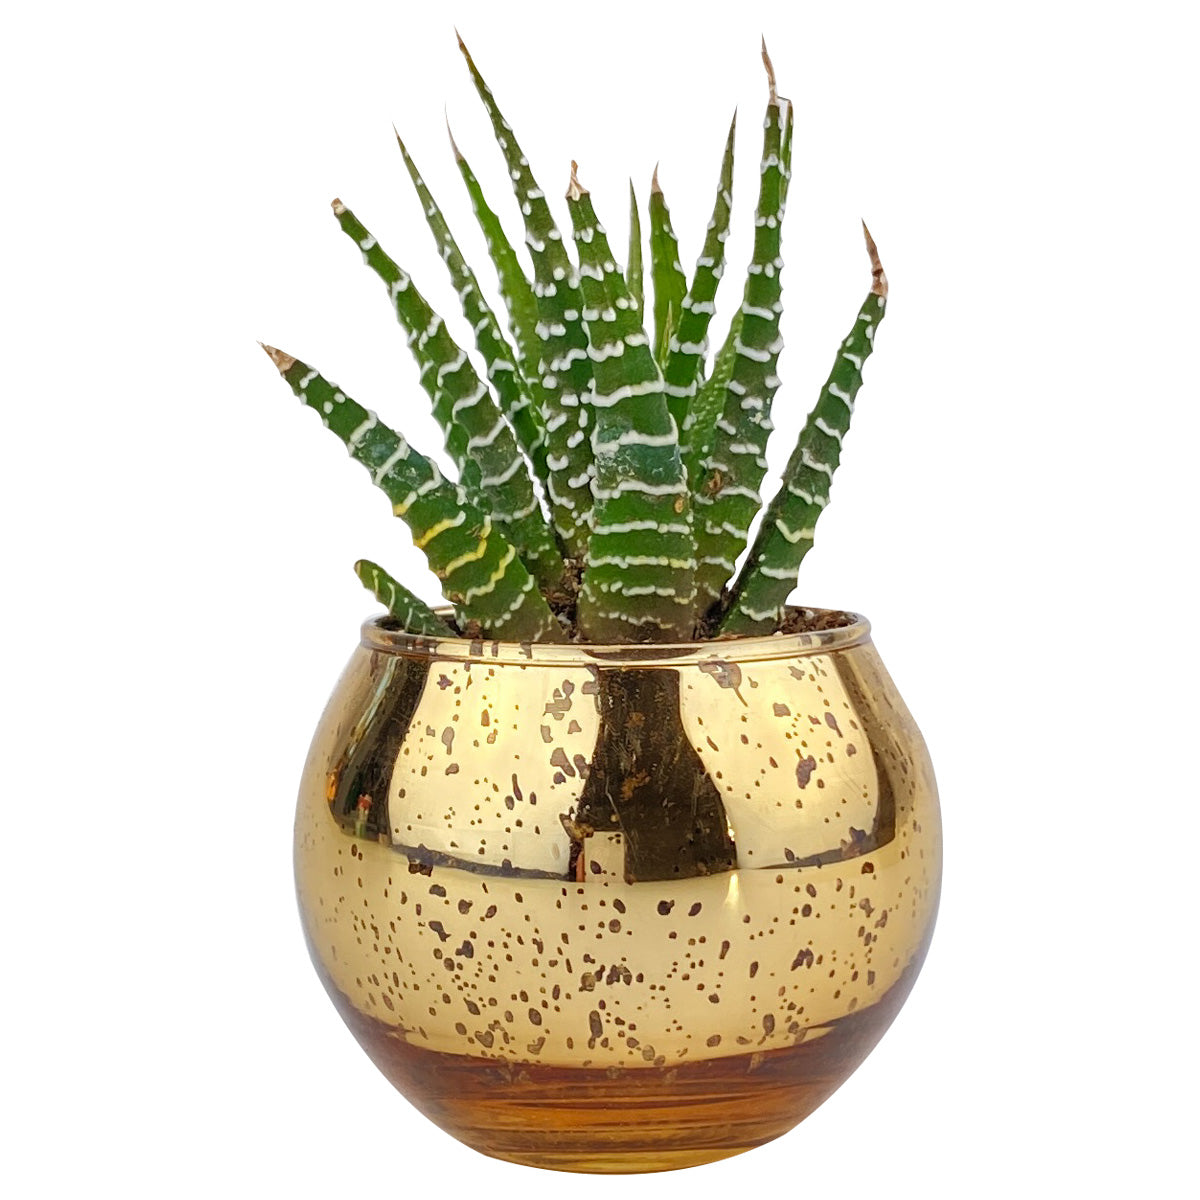 Pot for sale, Mini pot for succulent, Succulent pot decor ideas, Flower pot for sale, glass pots for planting, succulent gift for holiday, Round Gold Glitter Pot